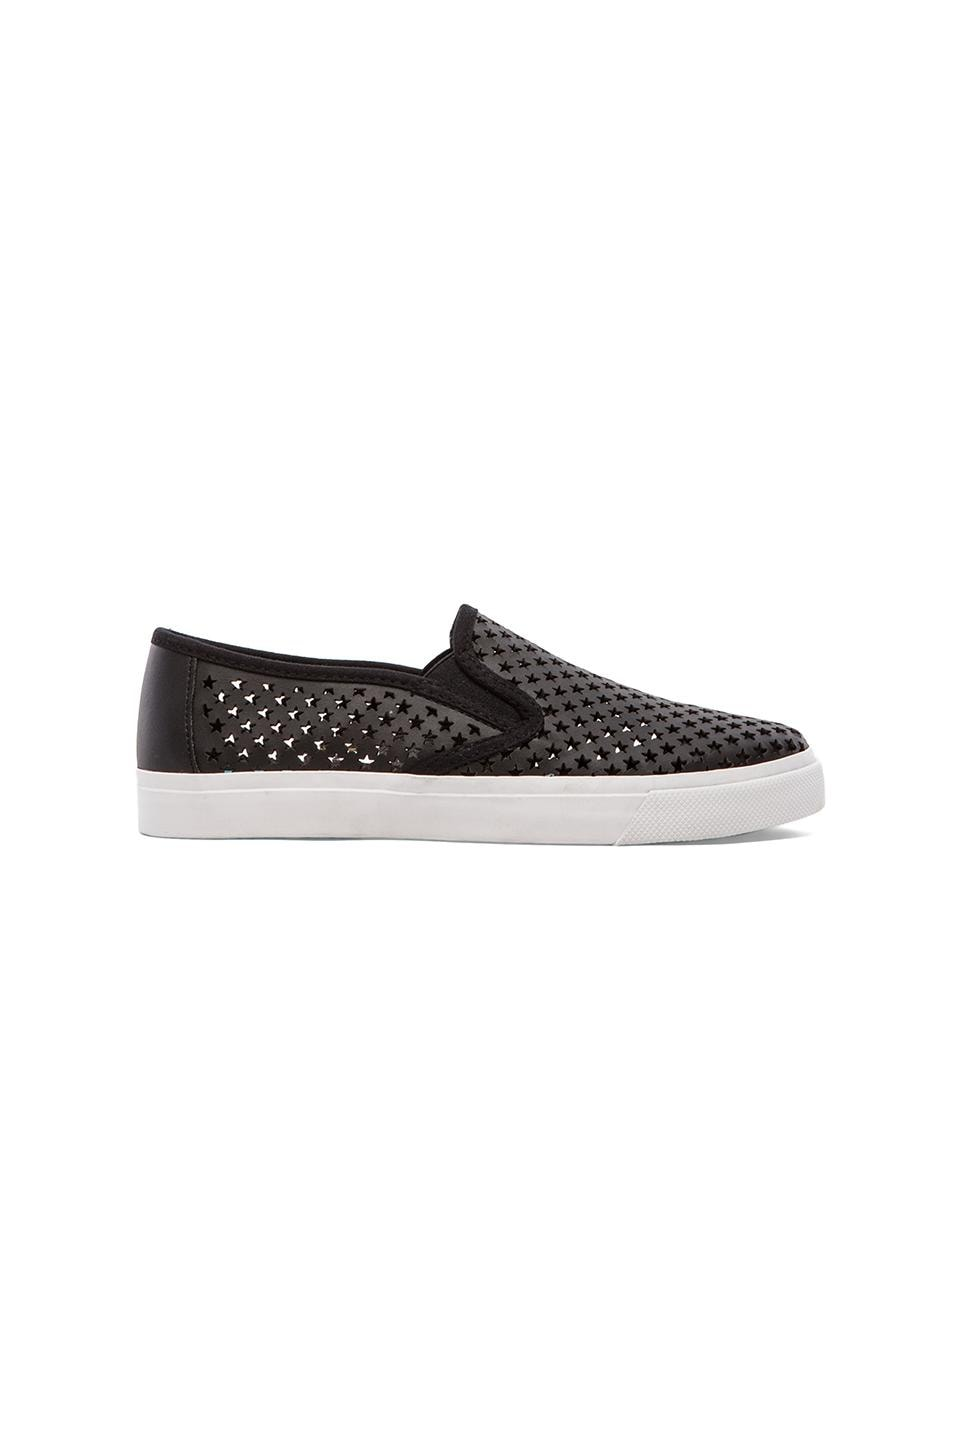 Jeffrey Campbell Ray Star Sneaker in Black Star White